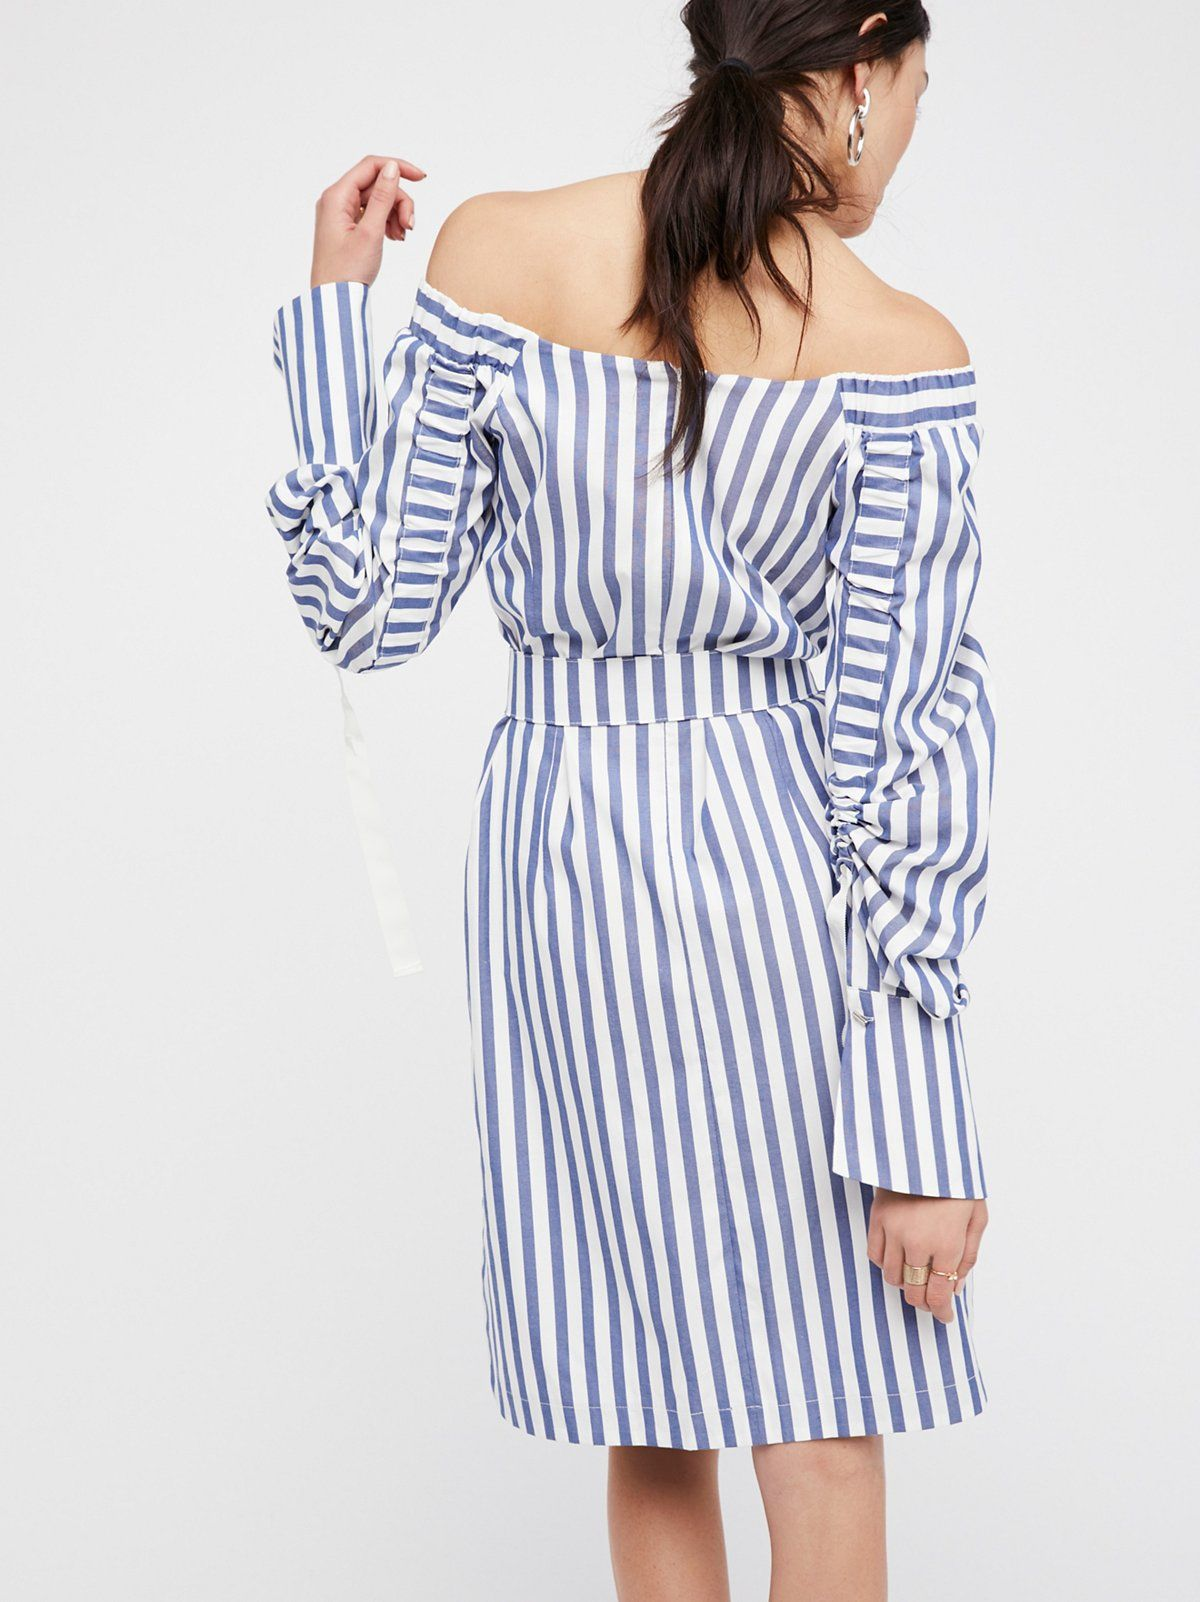 Seguar Dress | The classic striped dress gets a modern update with this off-the-shoulder mini featuring a structured shape with femme, scrunched sleeve details for added style.    * Elastic at the shoulders for an easy fit * Sleeve detailing adjustable with simple button closures * Side vents * Belt at the waist